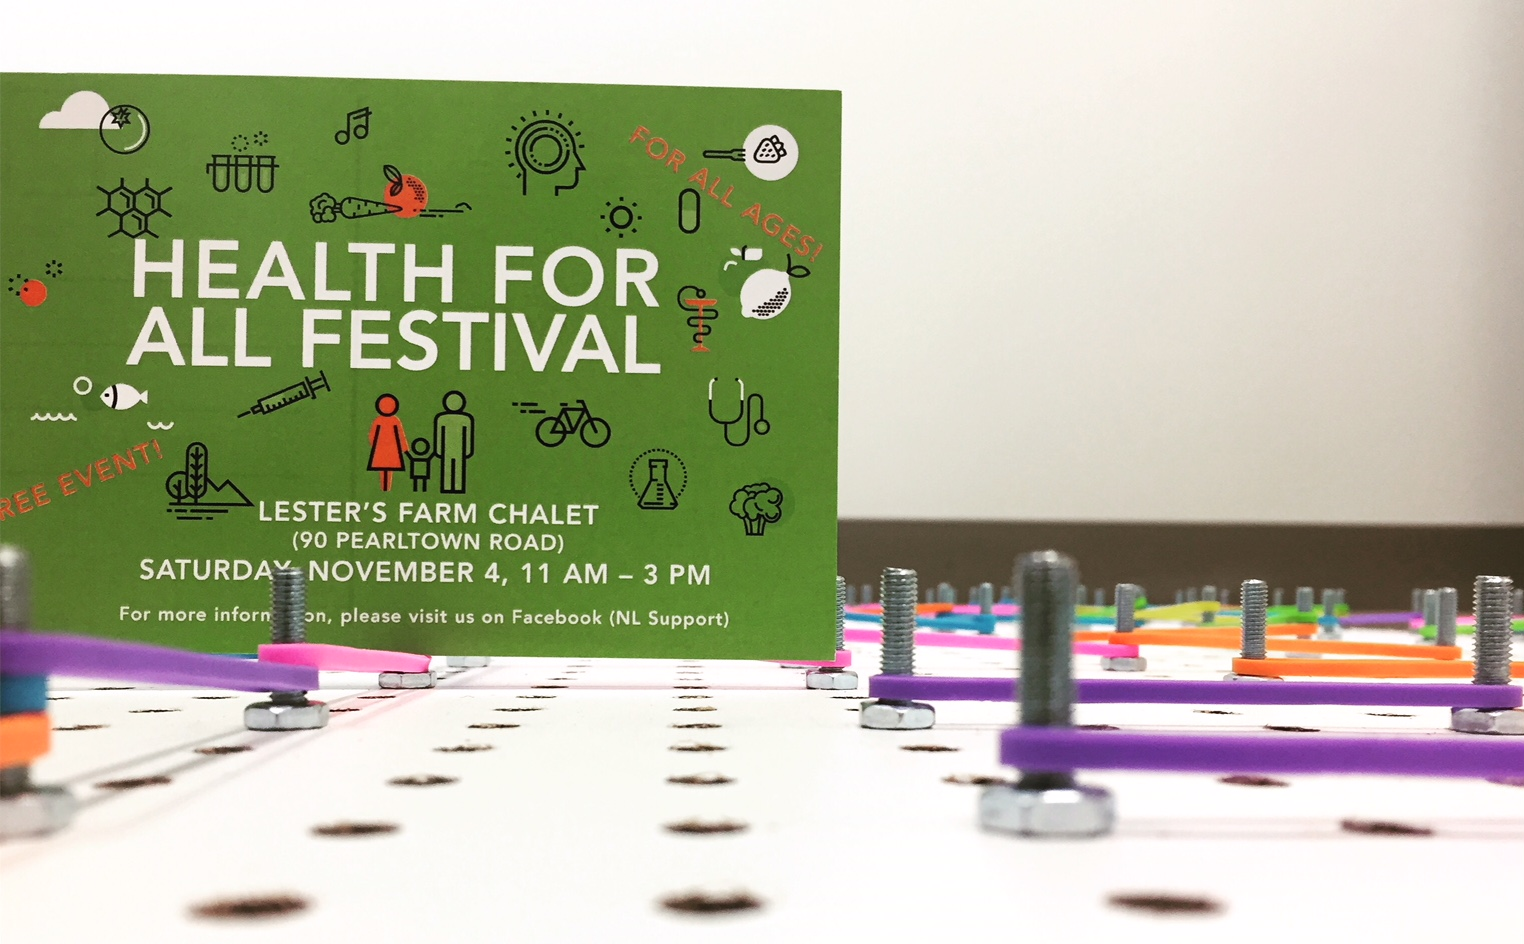 Organizers are planning hands-on activities and demonstrations as part of the festival.